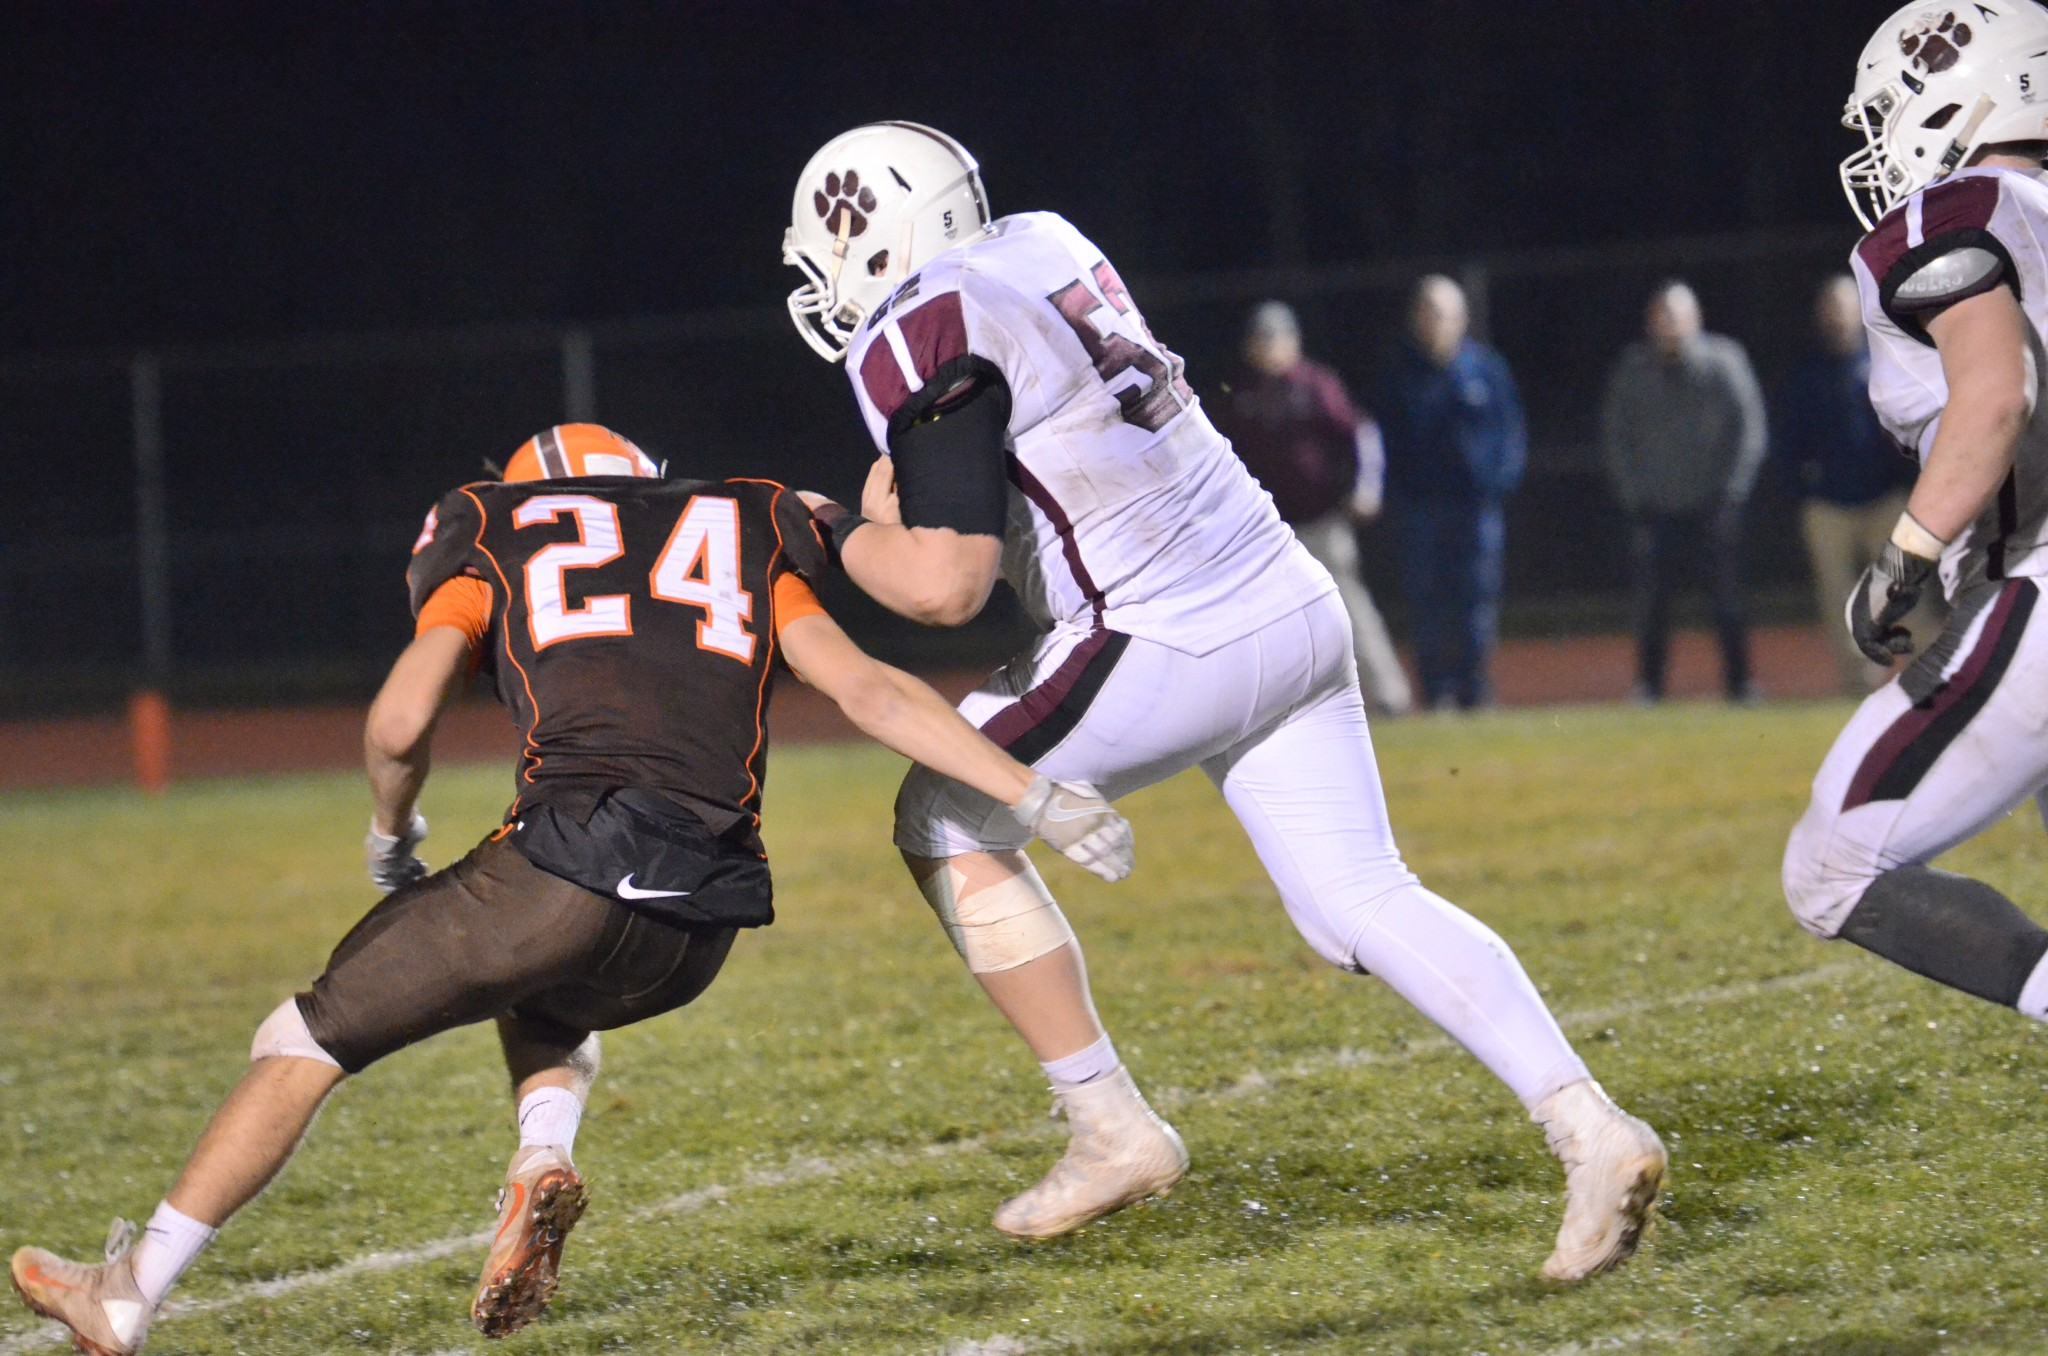 Garnet Valley linebacker Shane Donegan runs with an interception Friday. the running game and defense was a simple recipe to a third straight upset, 44-27 over No. 3 seed Perkiomen Valley in the District 1 Class 6A semifinal. (Digital First Media/Sam Stewart)